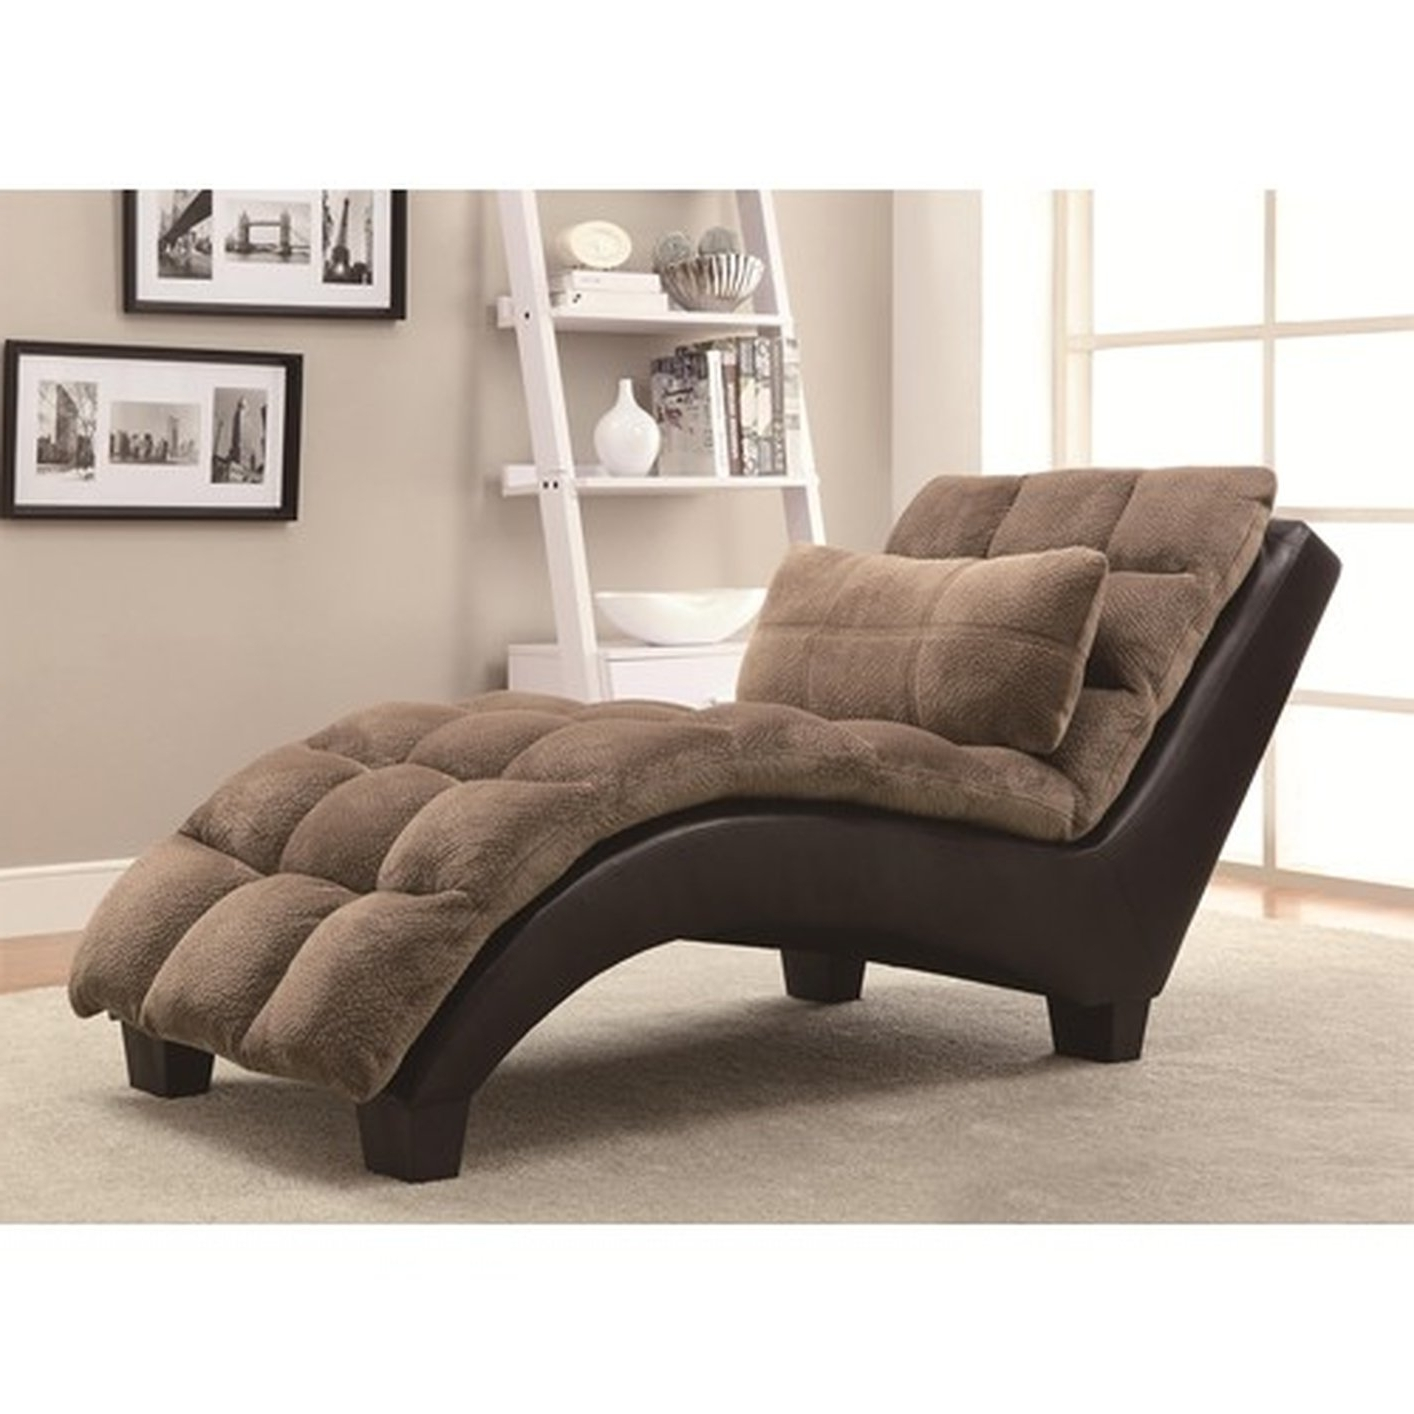 Most Current Fabric Chaise Lounge Chairs Pertaining To Brown Fabric Chaise Lounge – Steal A Sofa Furniture Outlet Los (View 8 of 15)